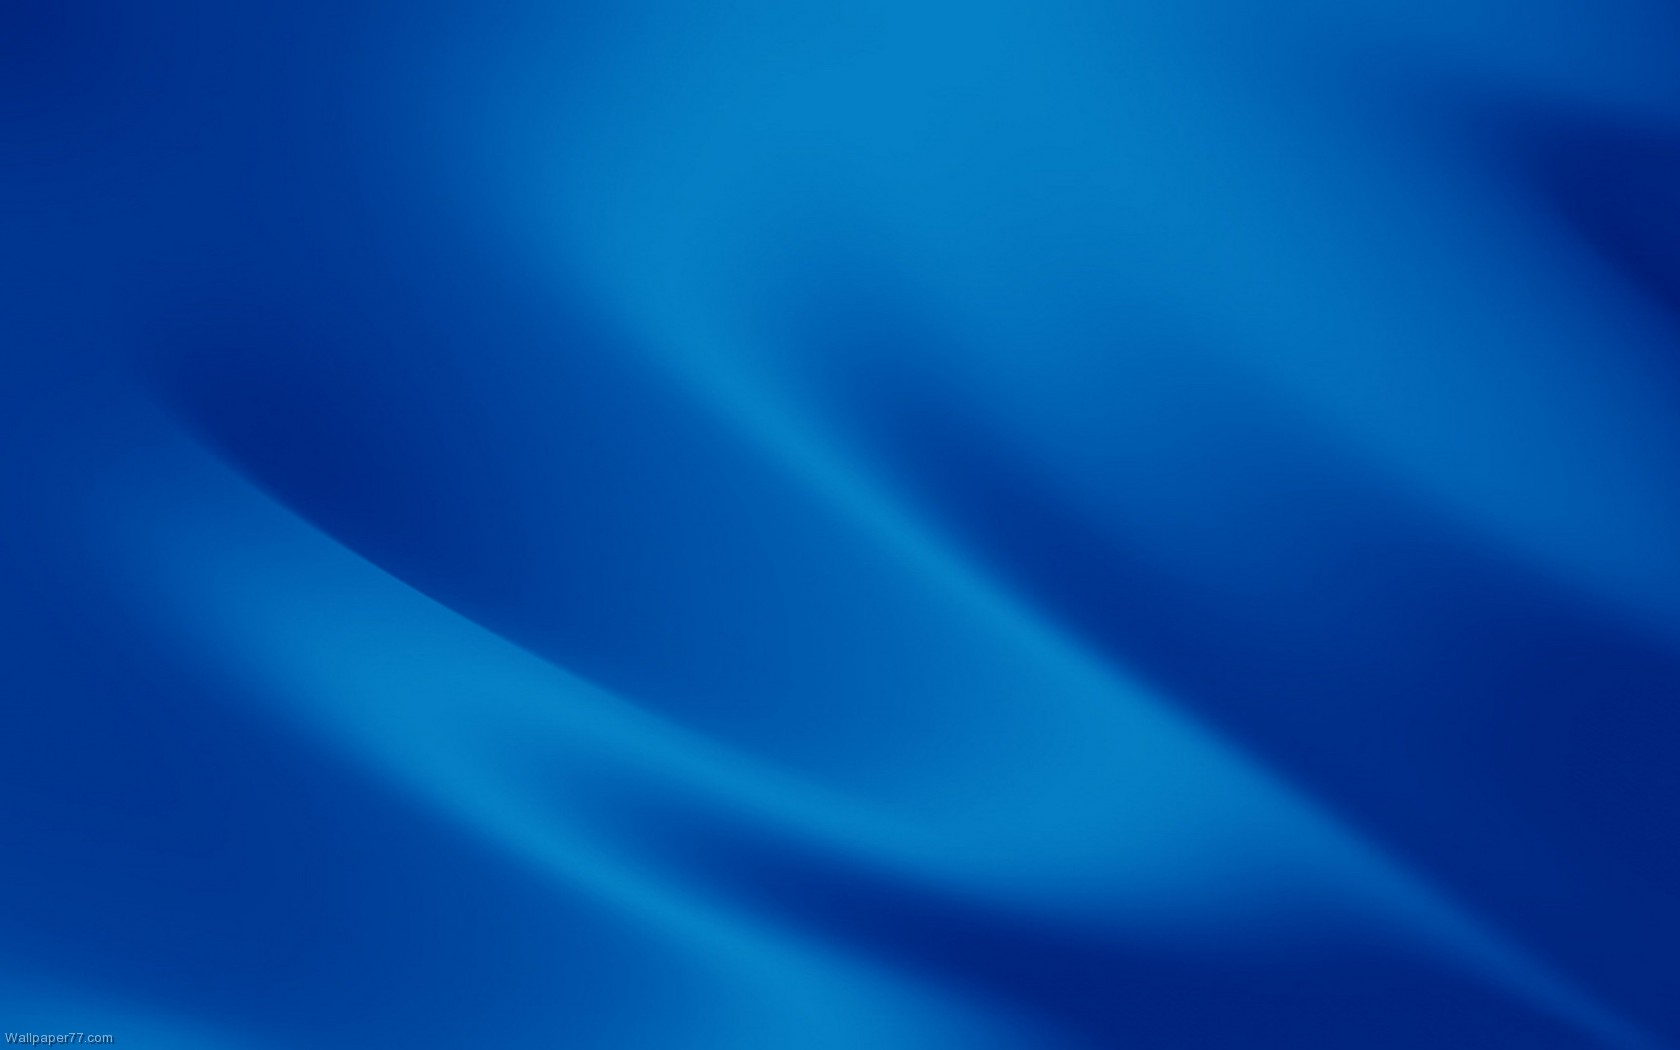 Dark Blue Background Wallpaper Image Abstract Blue 1680x1050